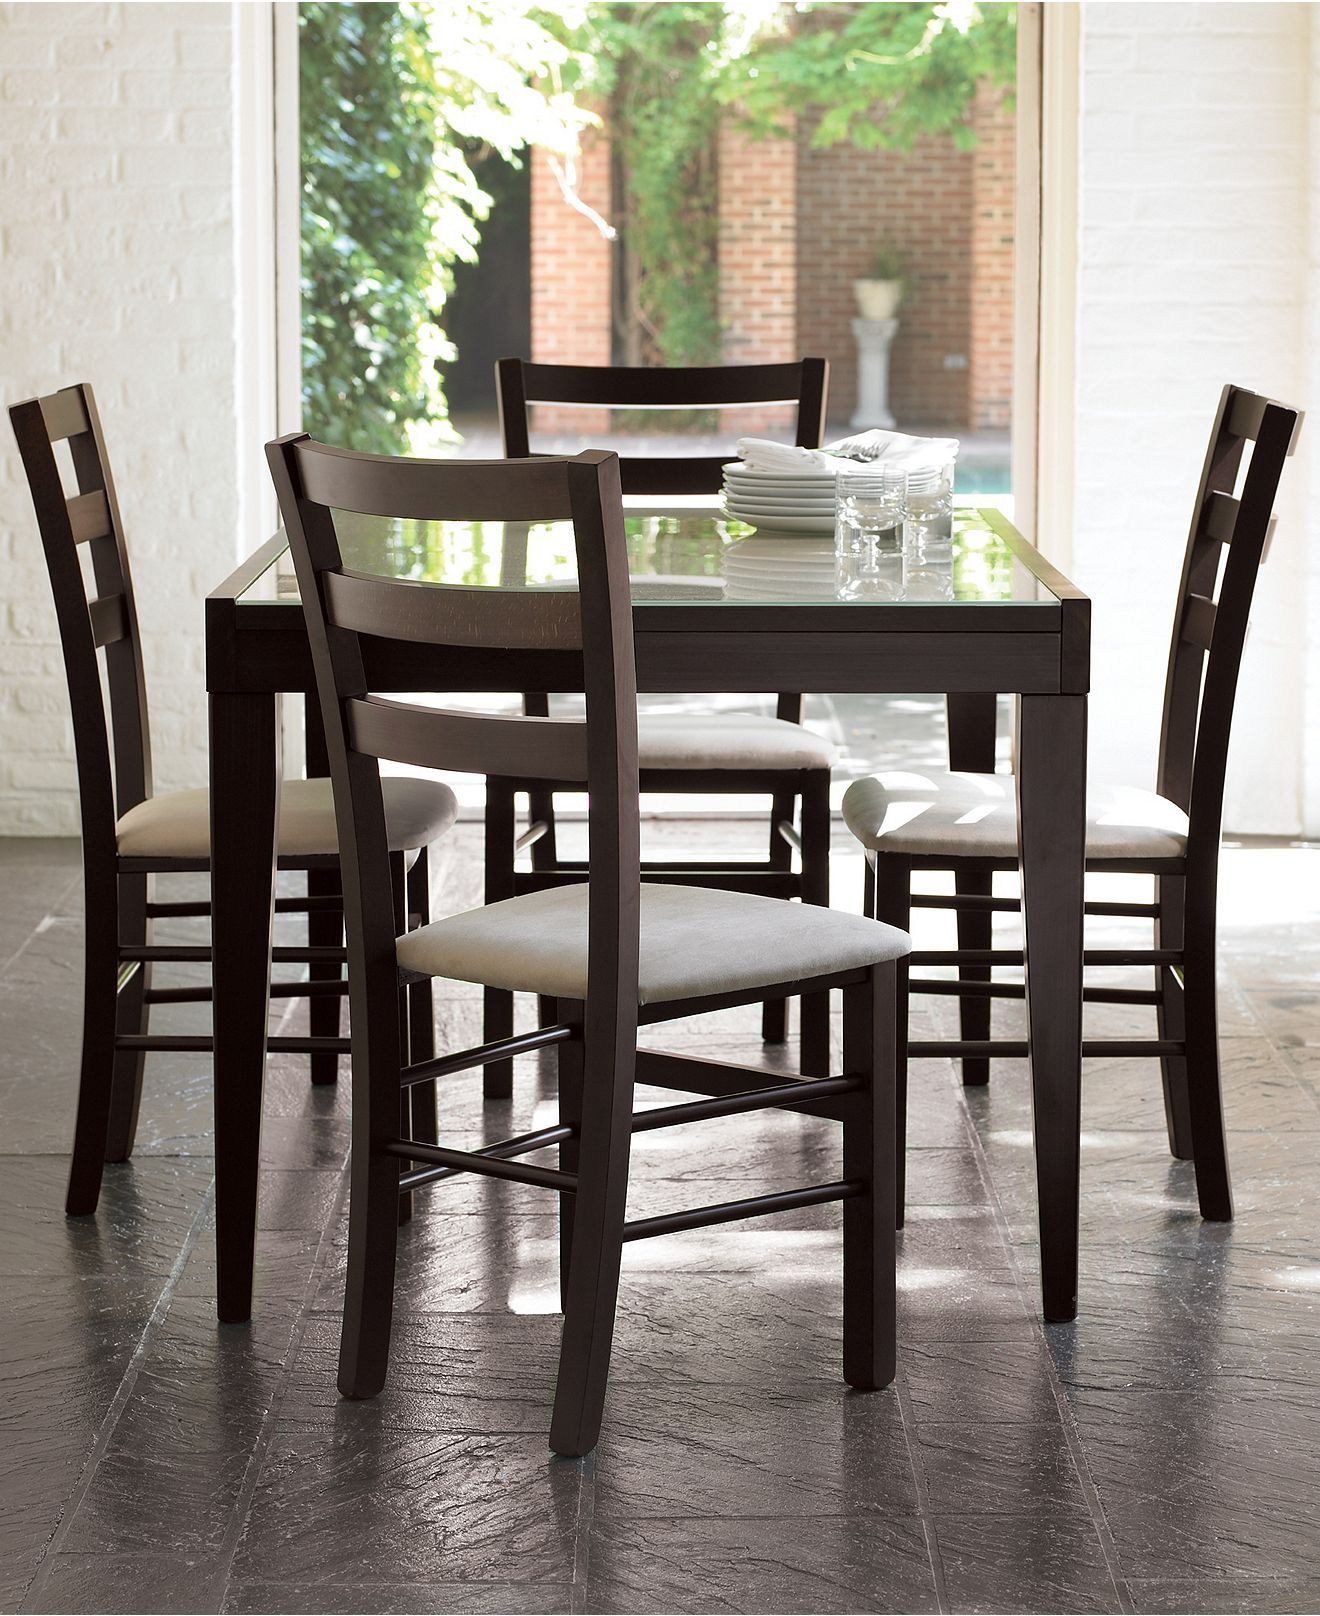 Cafe Latte 5 Piece Dining Set Dining Table And 4 Slatback Chairs